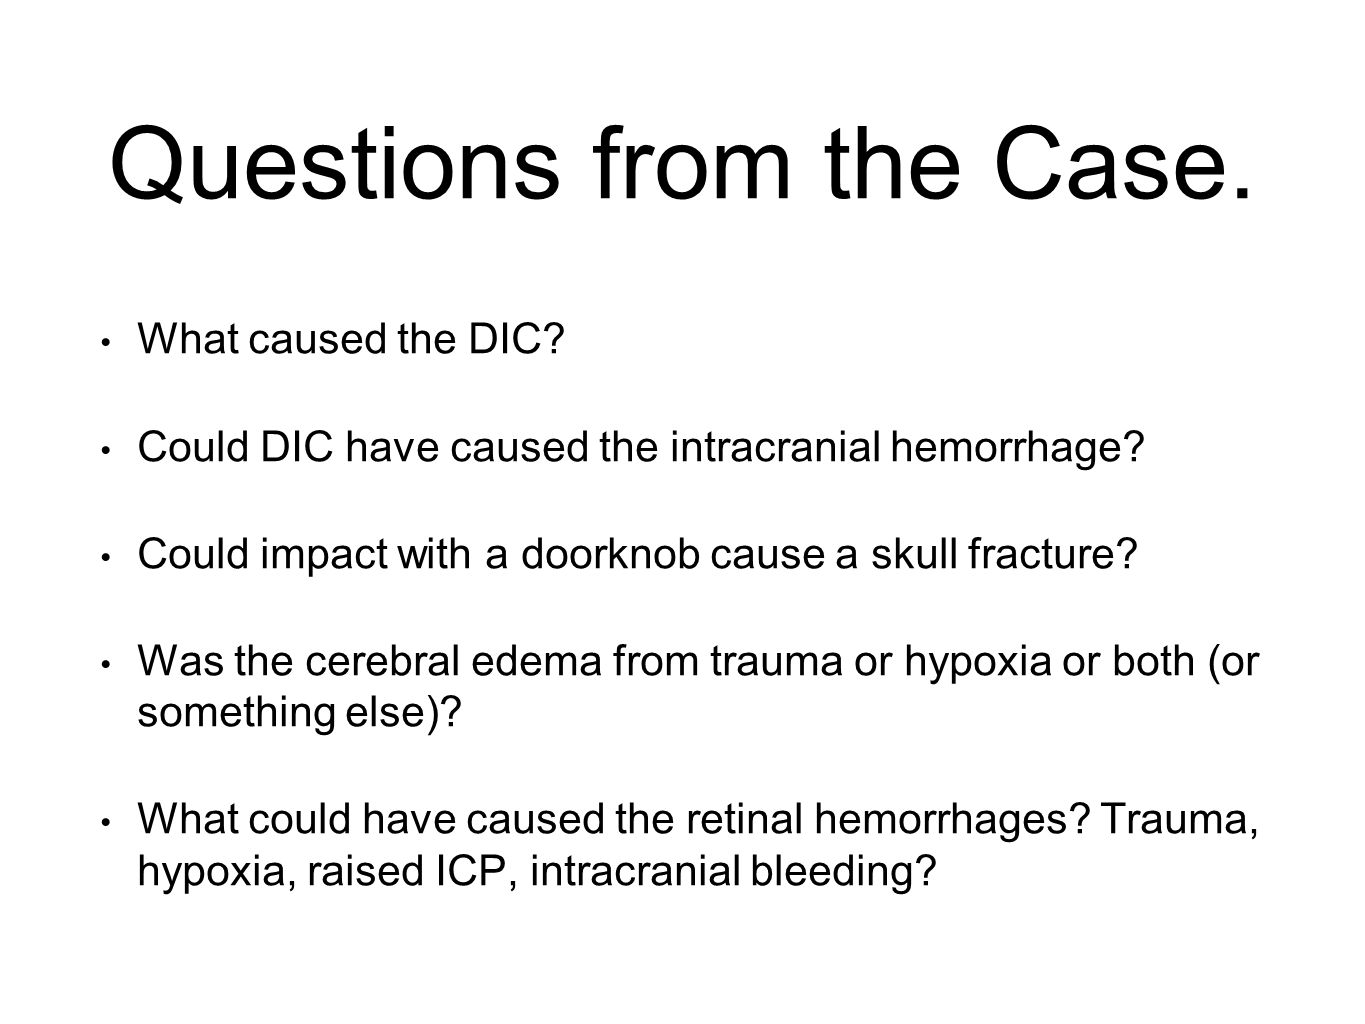 Questions from the Case. What caused the DIC? Could DIC have caused the intracranial hemorrhage? Could impact with a doorknob cause a skull fracture?